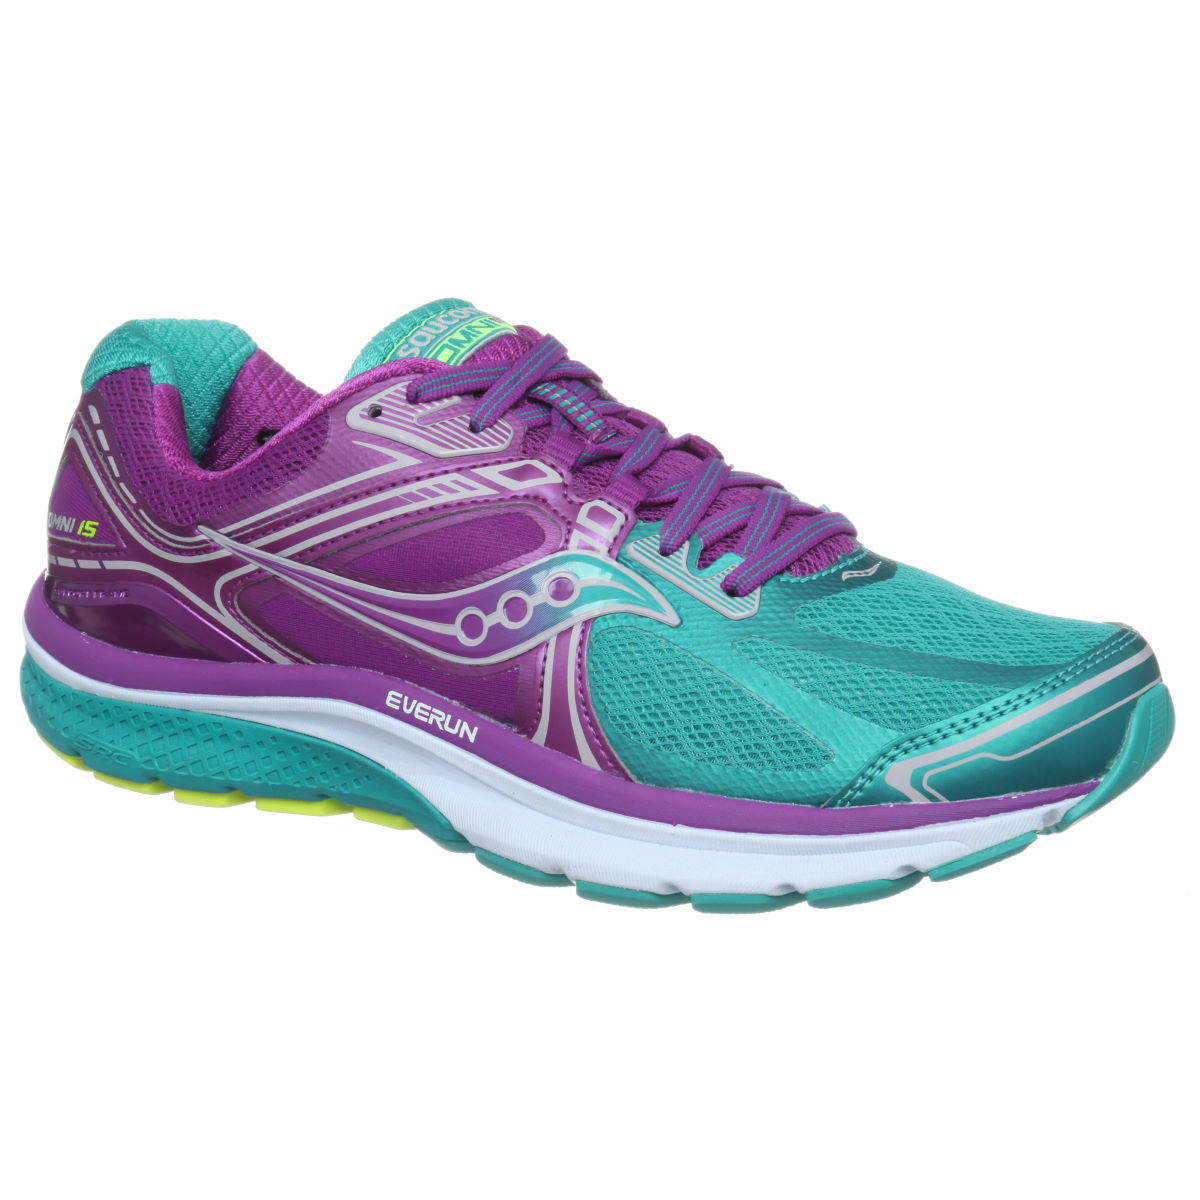 Chaussures Femme Saucony Omni 15 - UK 5 Teal / Purple